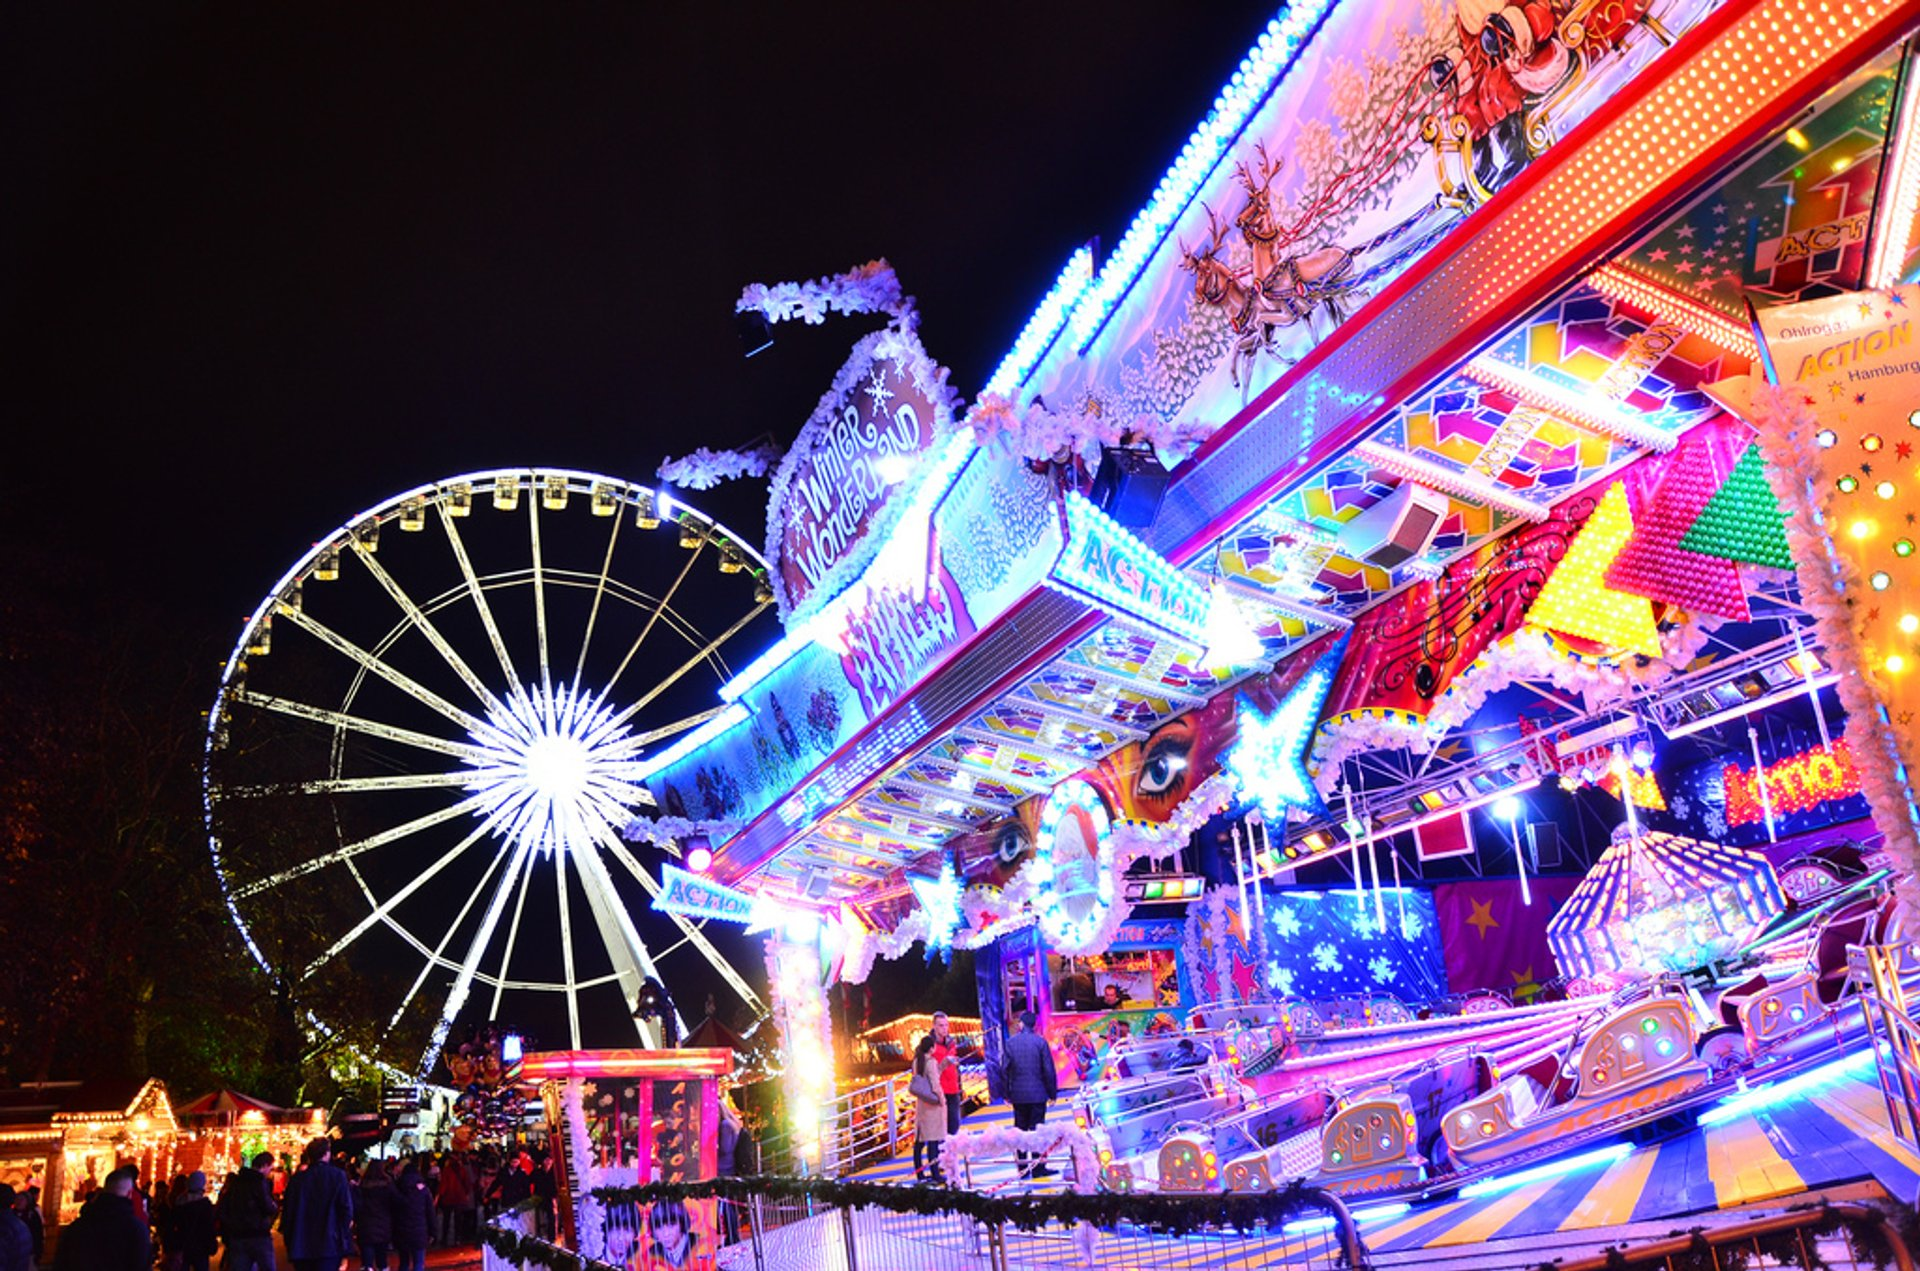 Hyde Park Winter Wonderland in London 2020 - Best Time